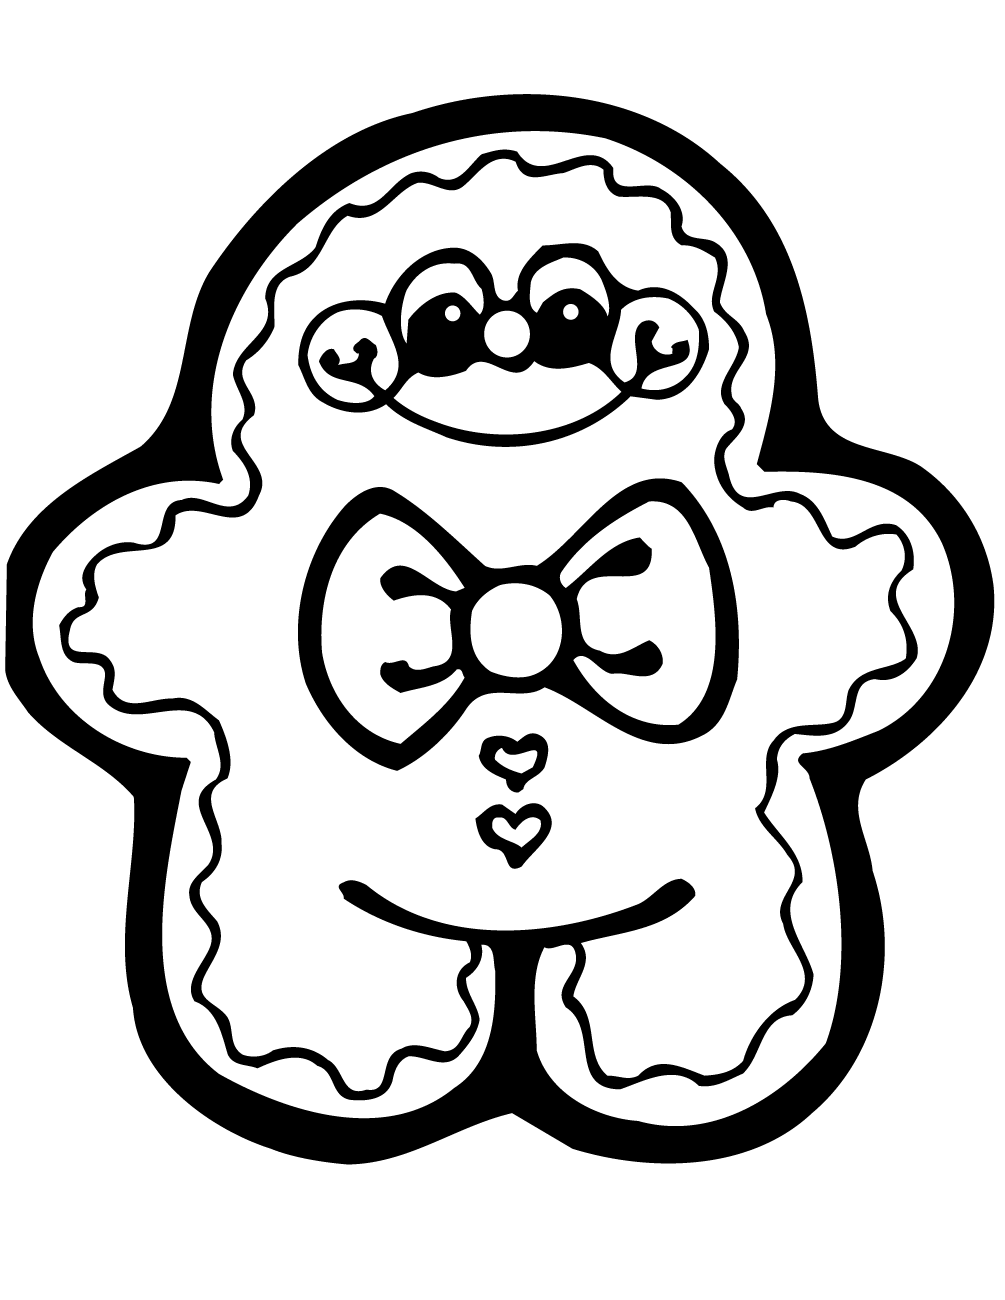 gingerbread man coloring pictures gingerbread man coloring pages to download and print for free coloring pictures gingerbread man